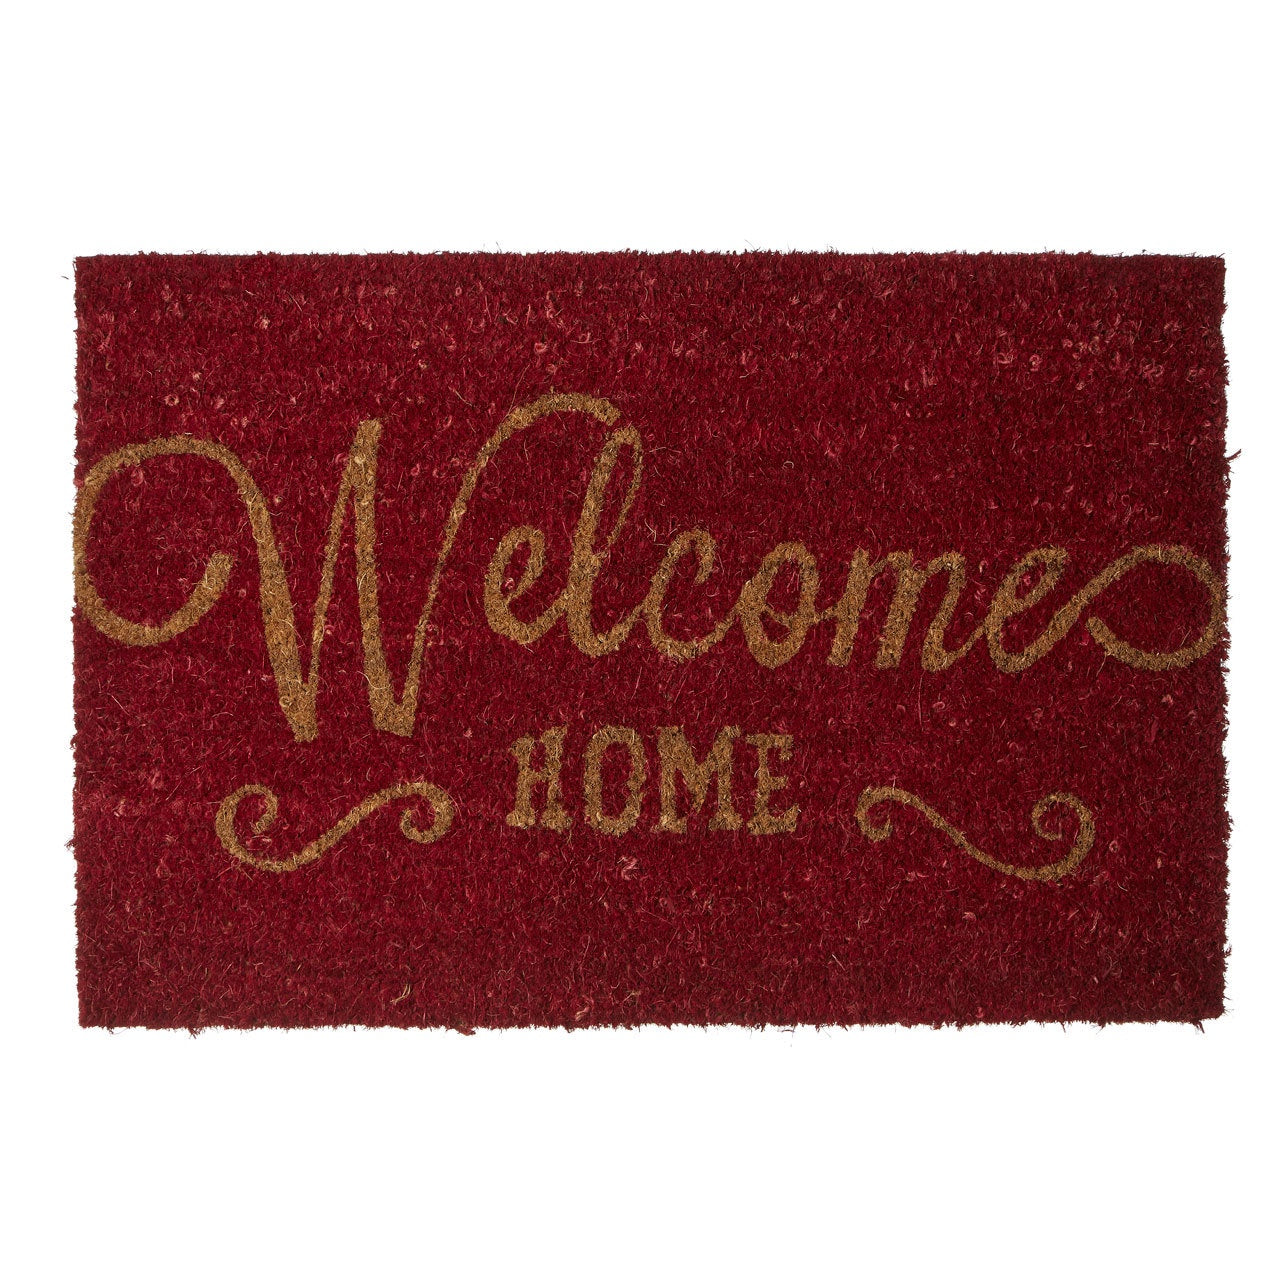 PREMIER WELCOME HOME DOORMAT 60CM X 40CM - 1901656